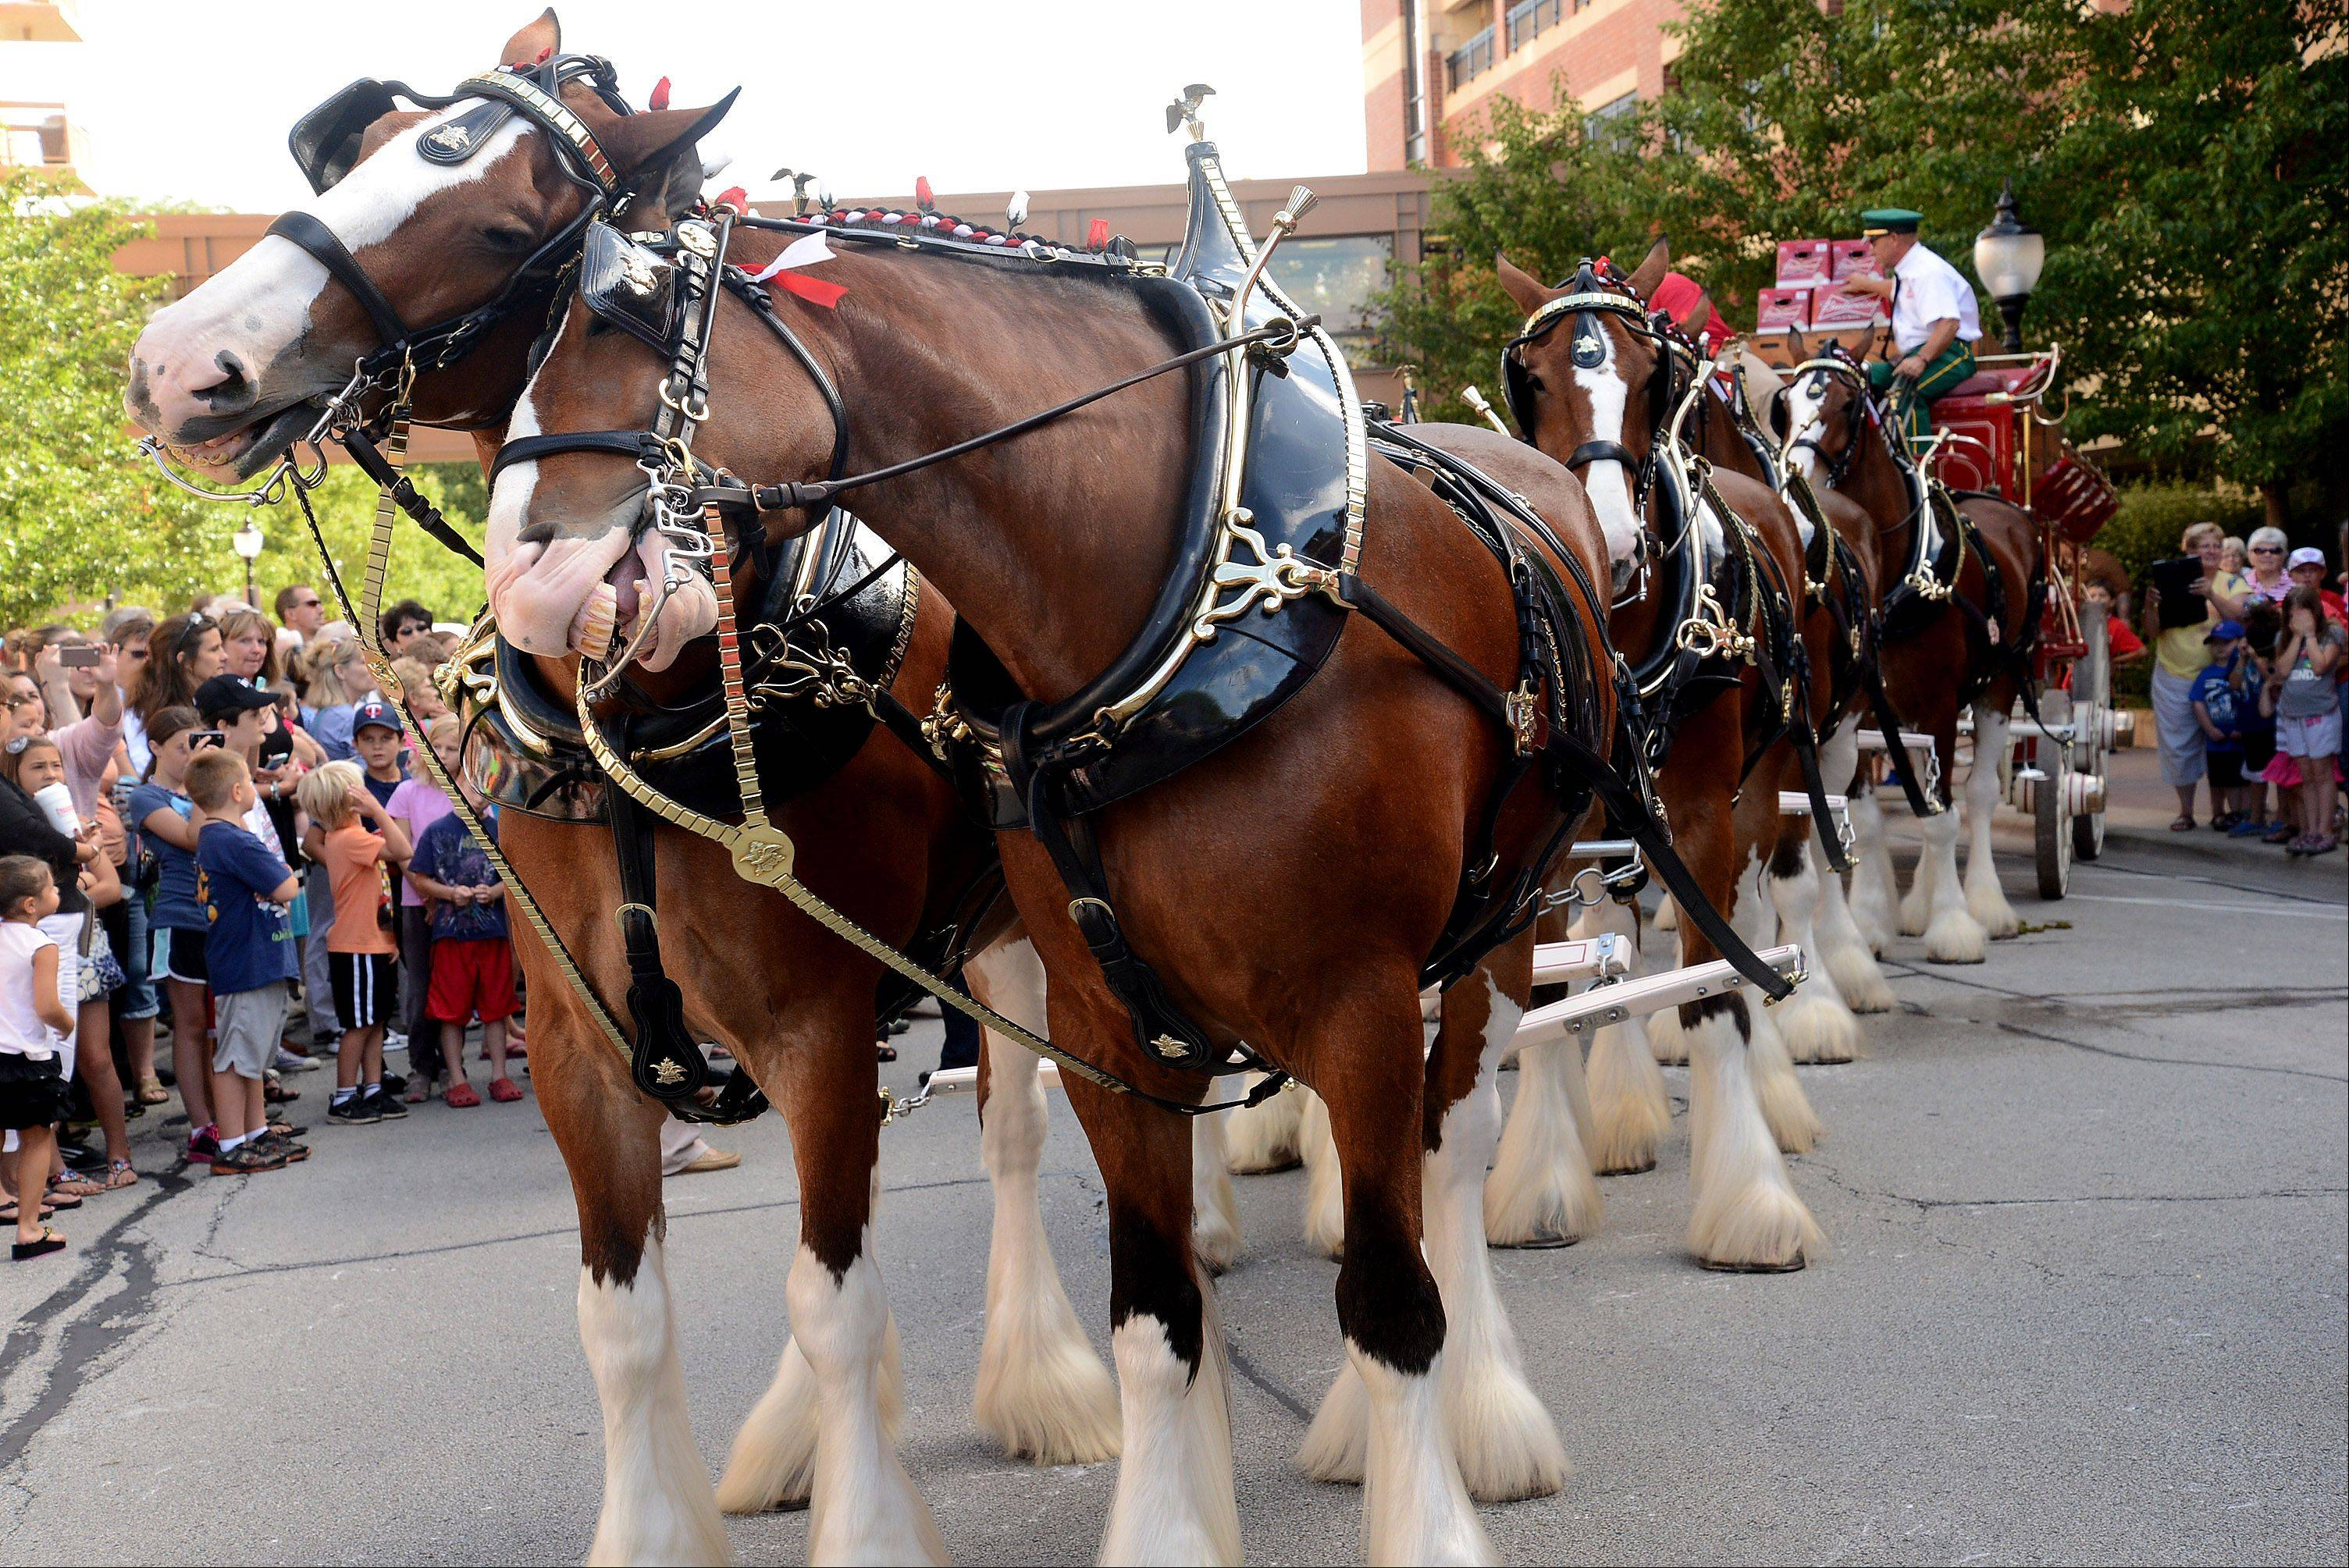 The Budweiser Clydesdales visit downtown Arlington Heights.